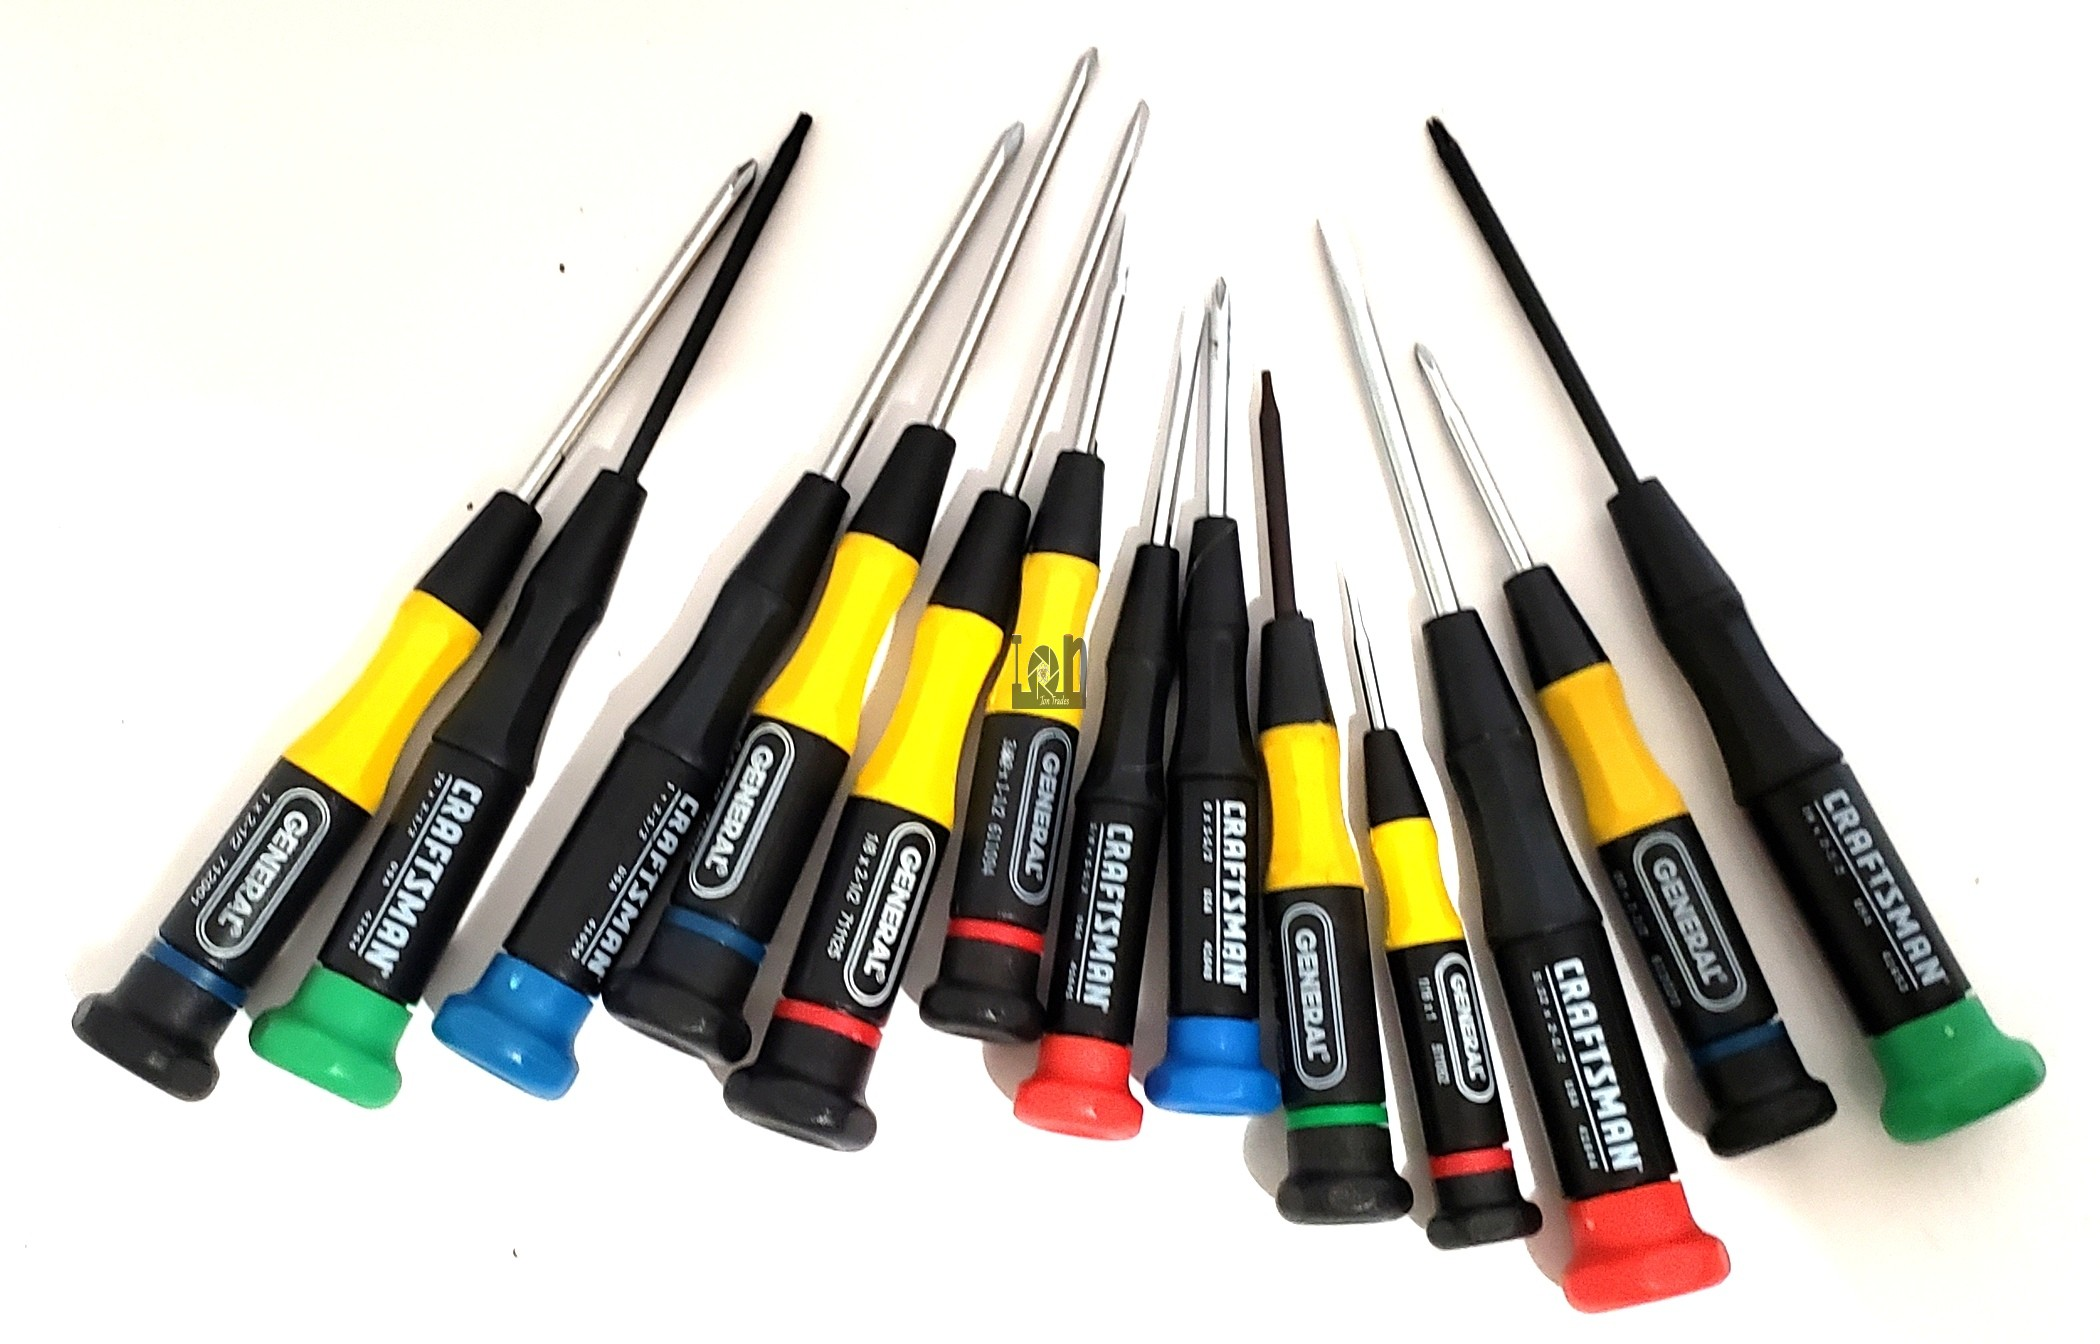 13pc Used Set of Precision Screwdrivers USA Made Craftsman General